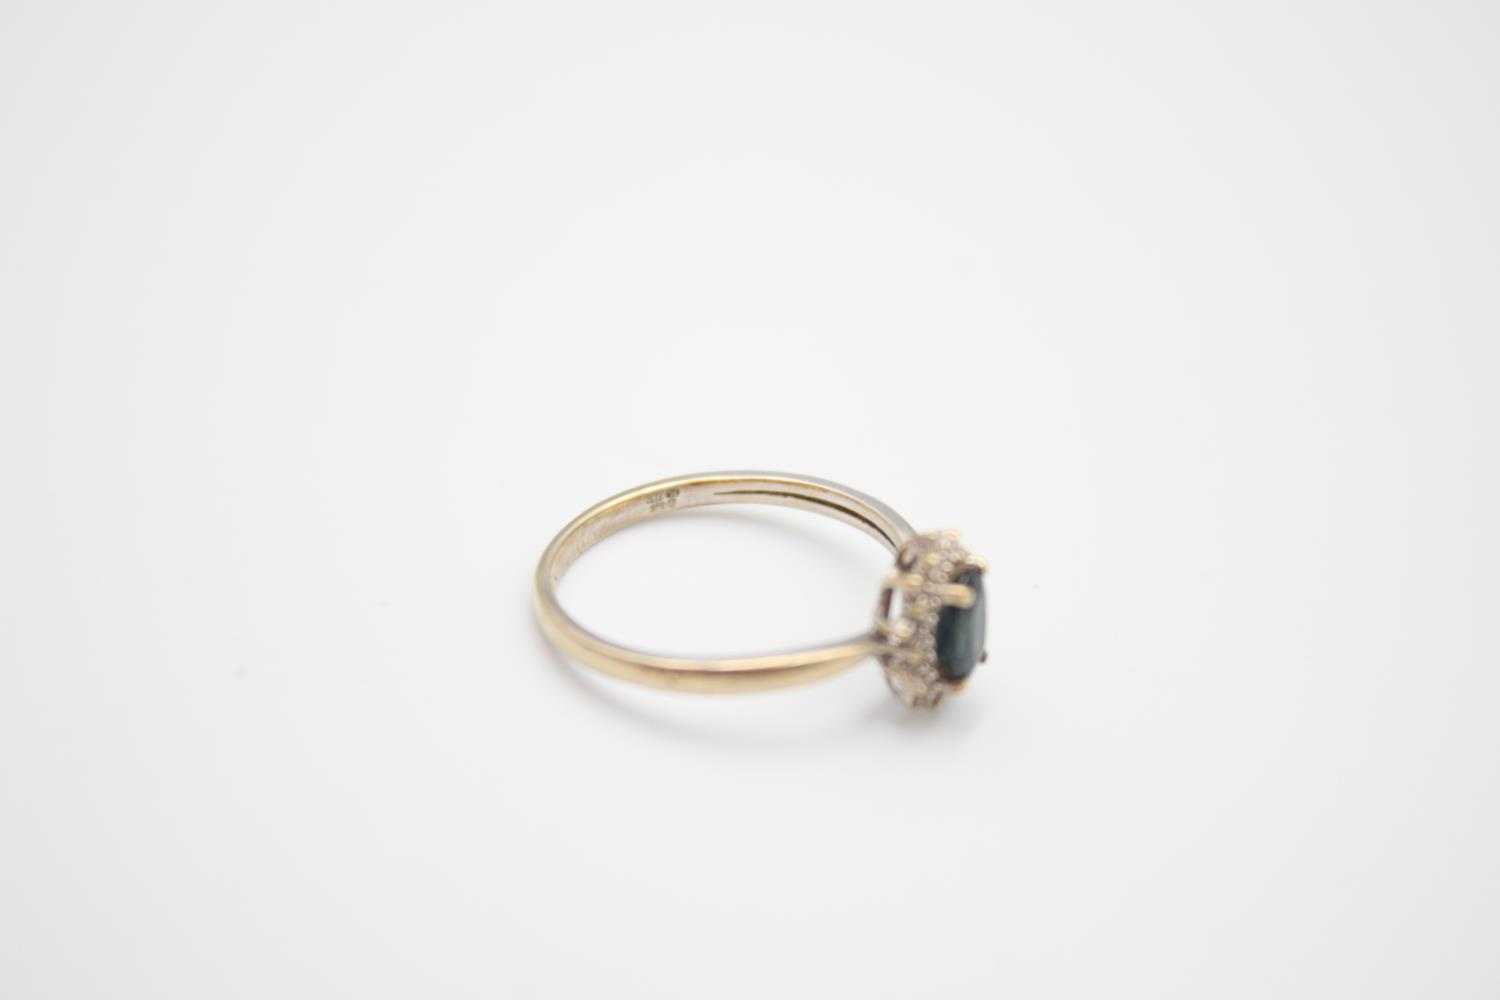 vintage 9ct gold sapphire & diamond halo ring 1.7g Size M - Image 3 of 5